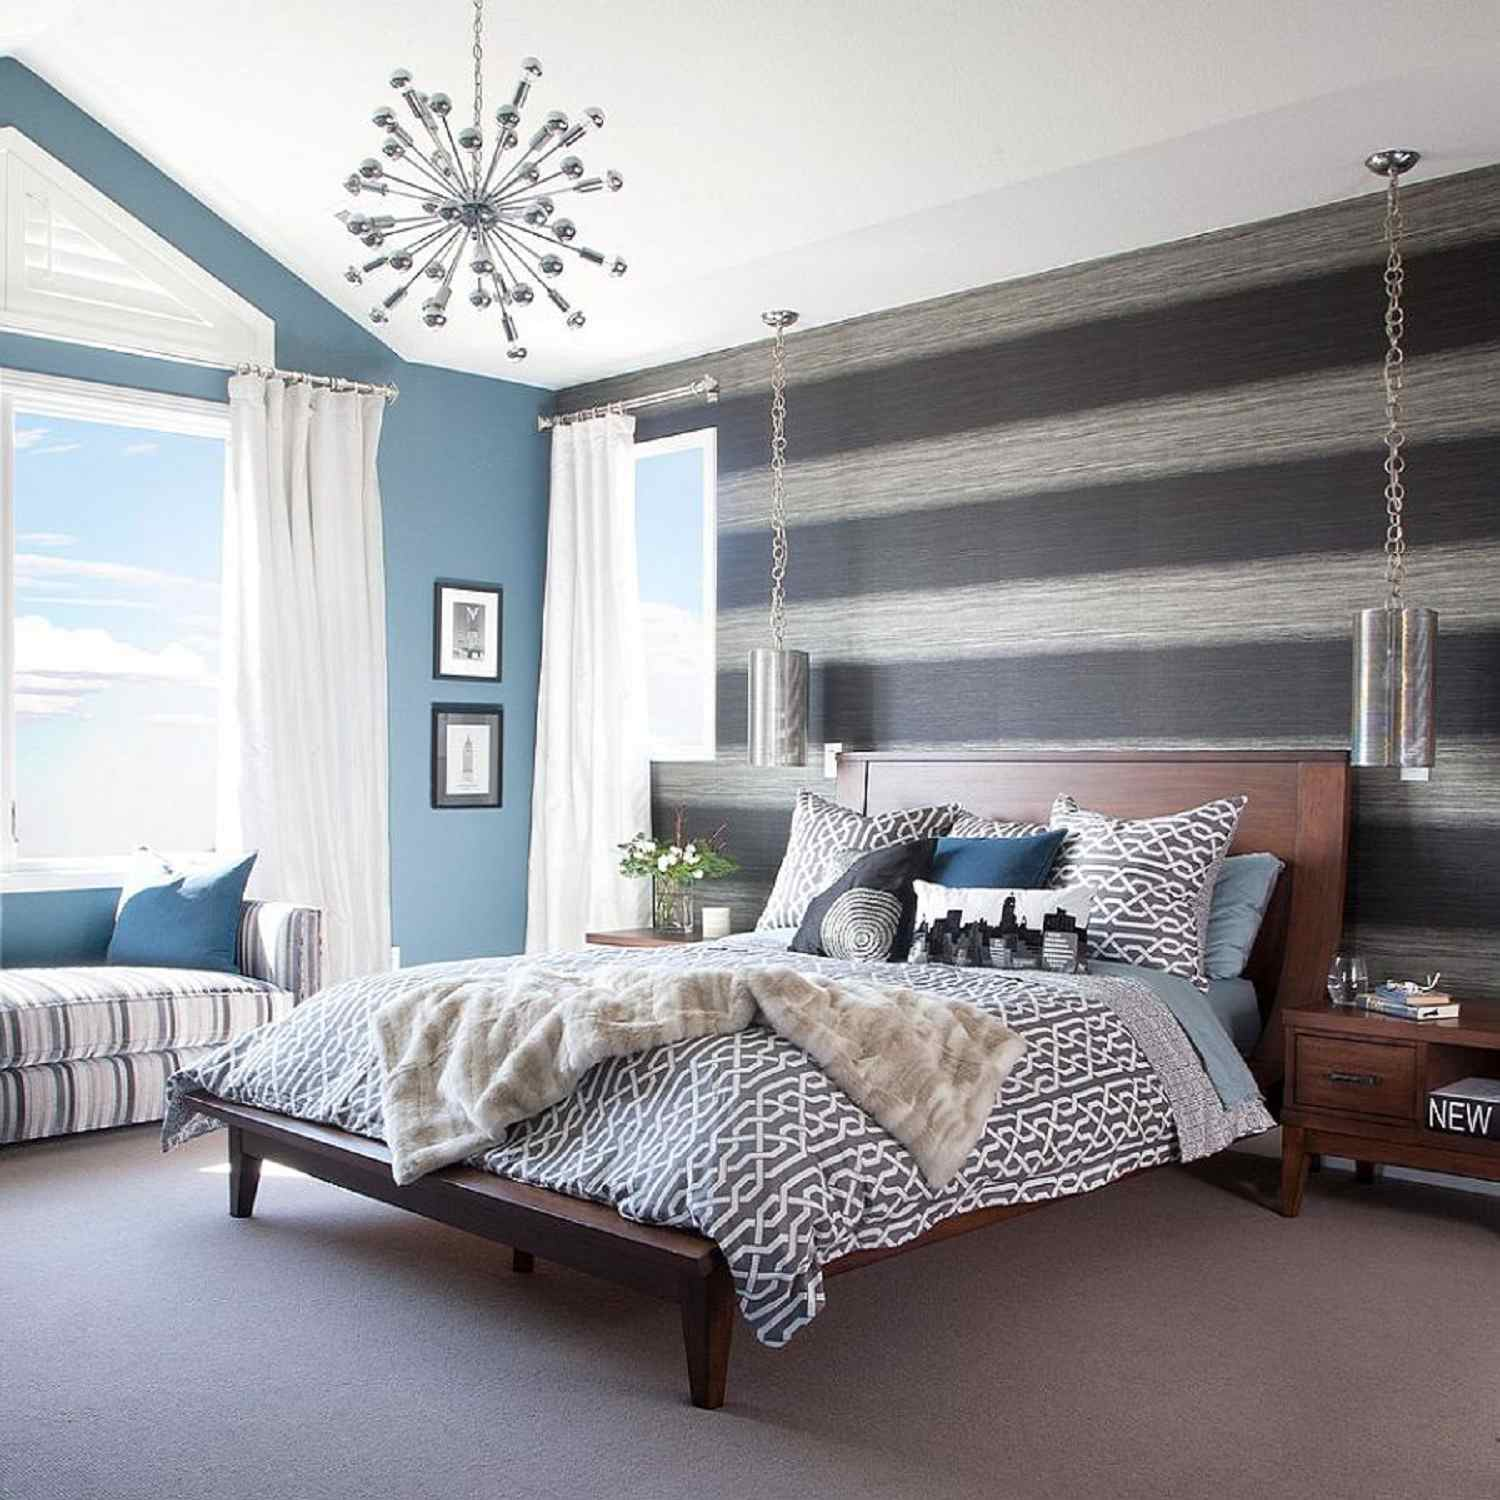 Gray striped wall in contemporary bedroom with bed and decorative ceiling light fixture..